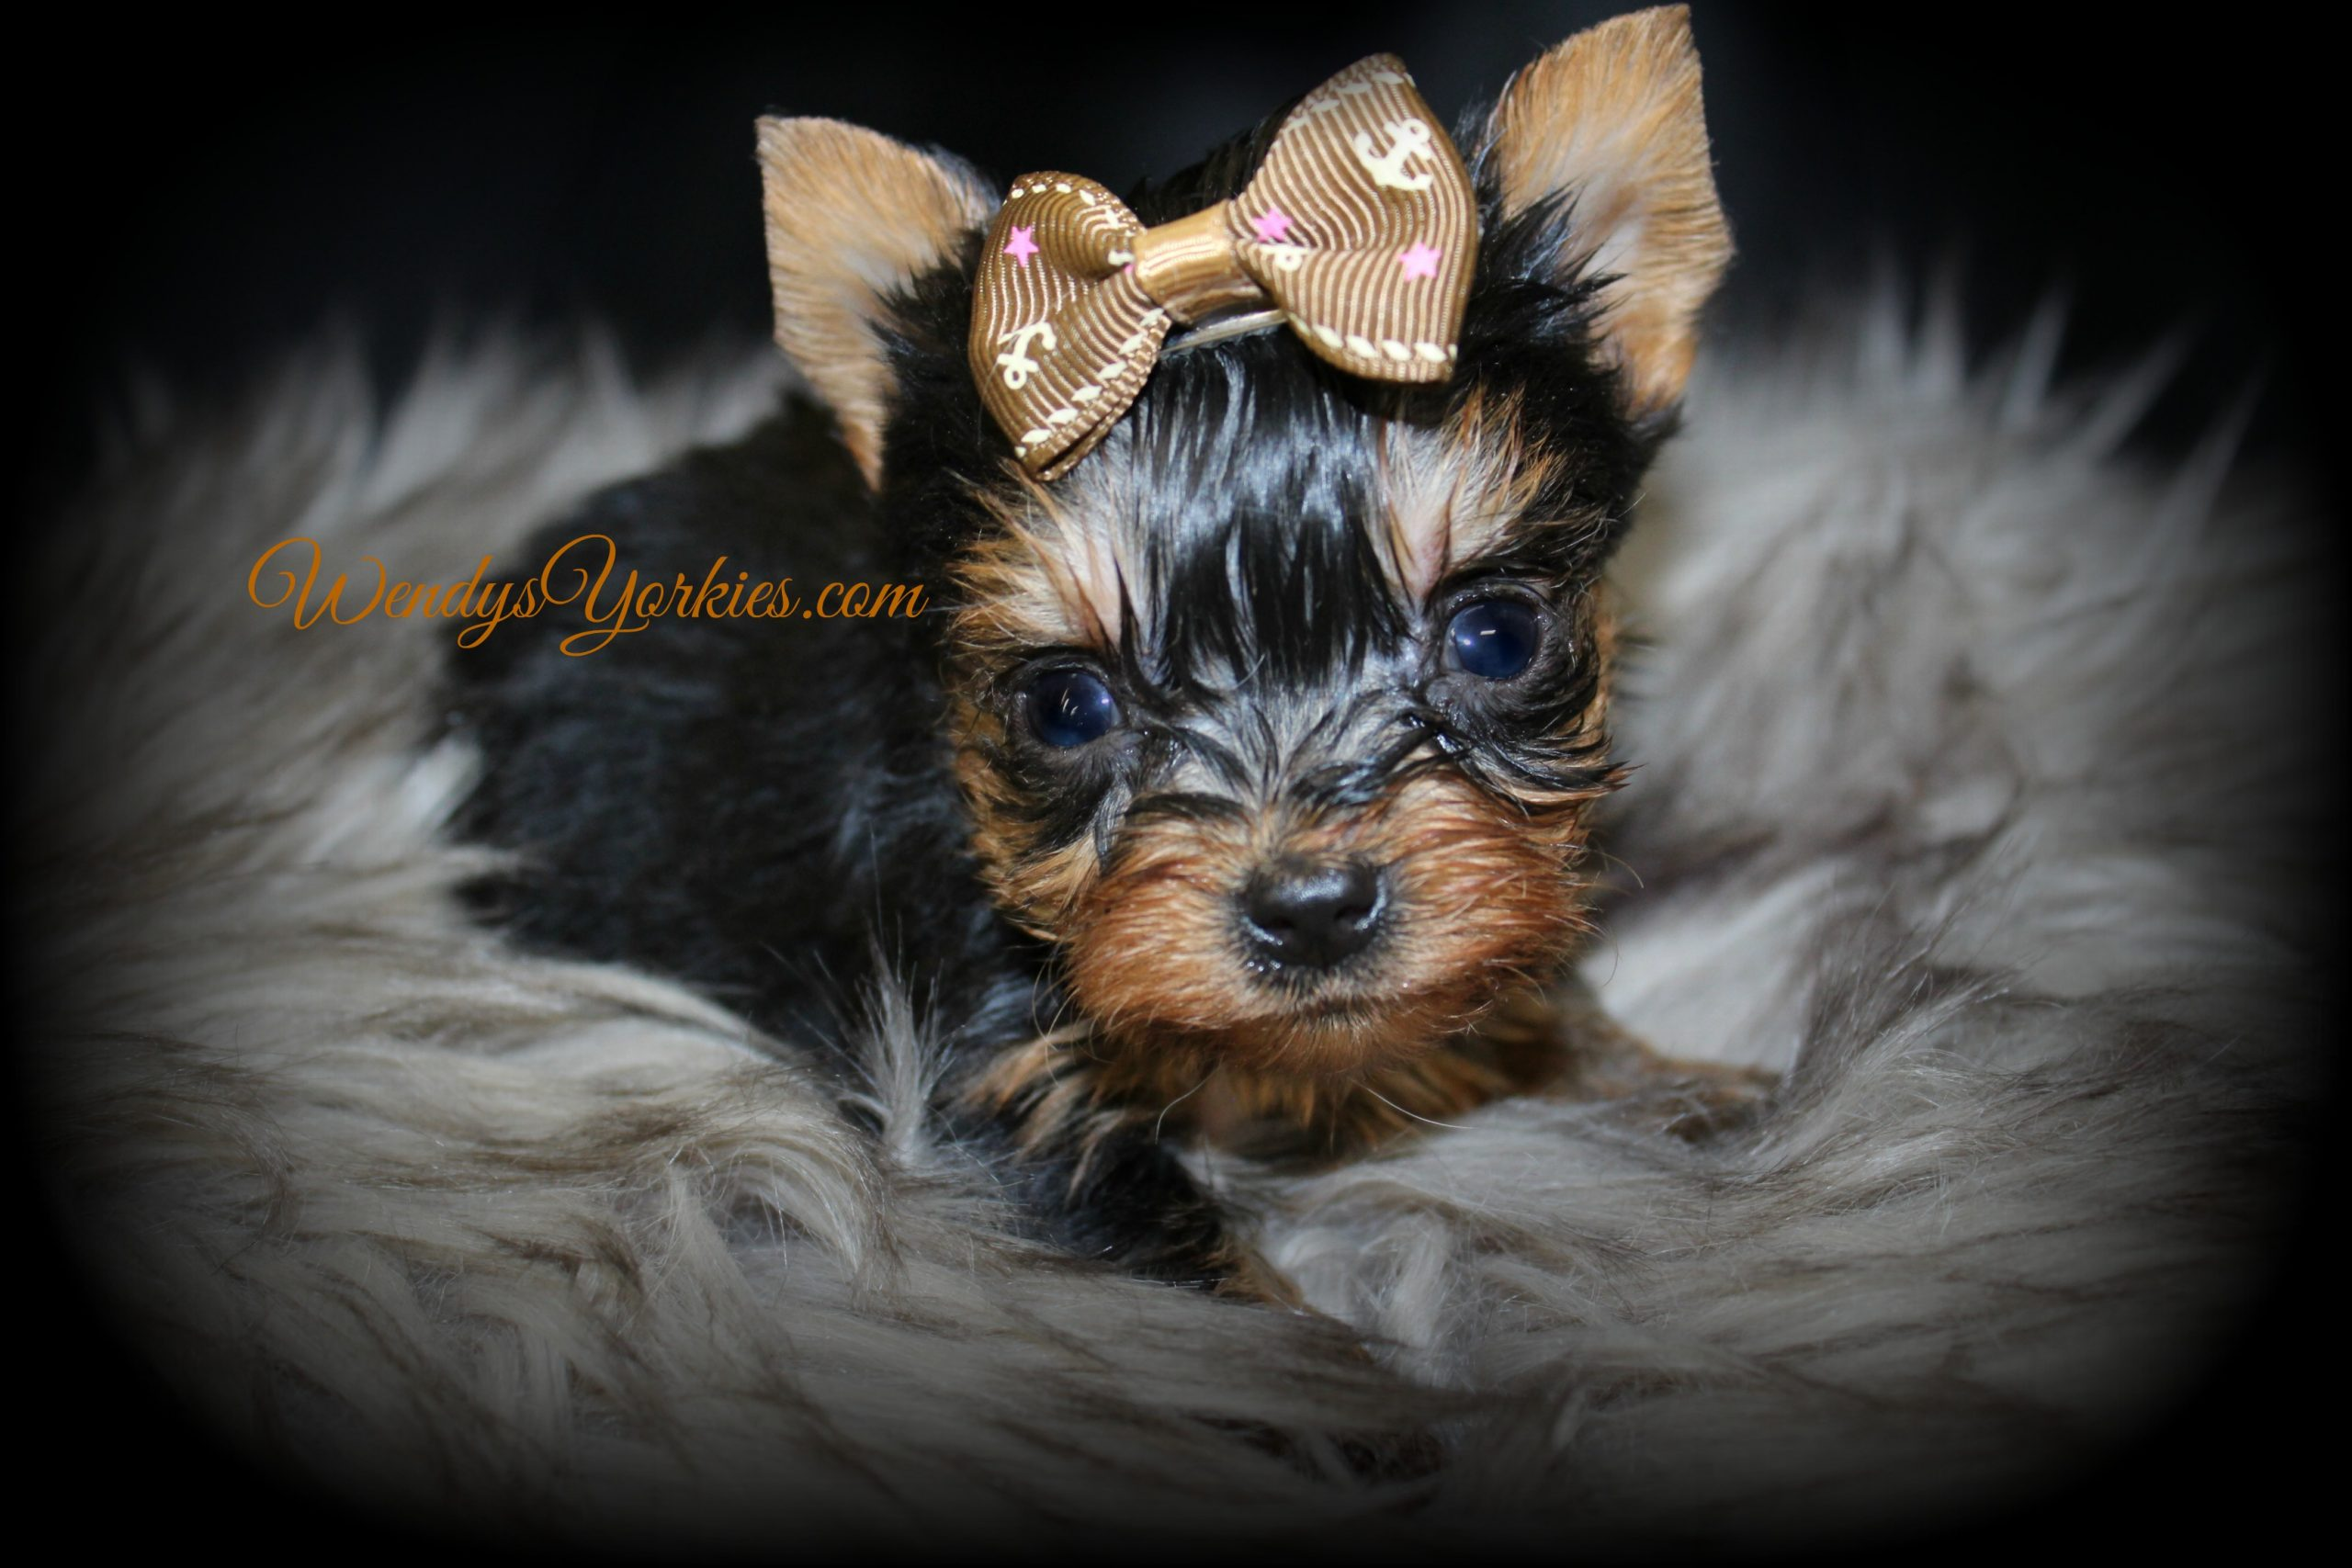 Teacup Yorkie puppy for sale, Grace m3, WendysYorkies.com